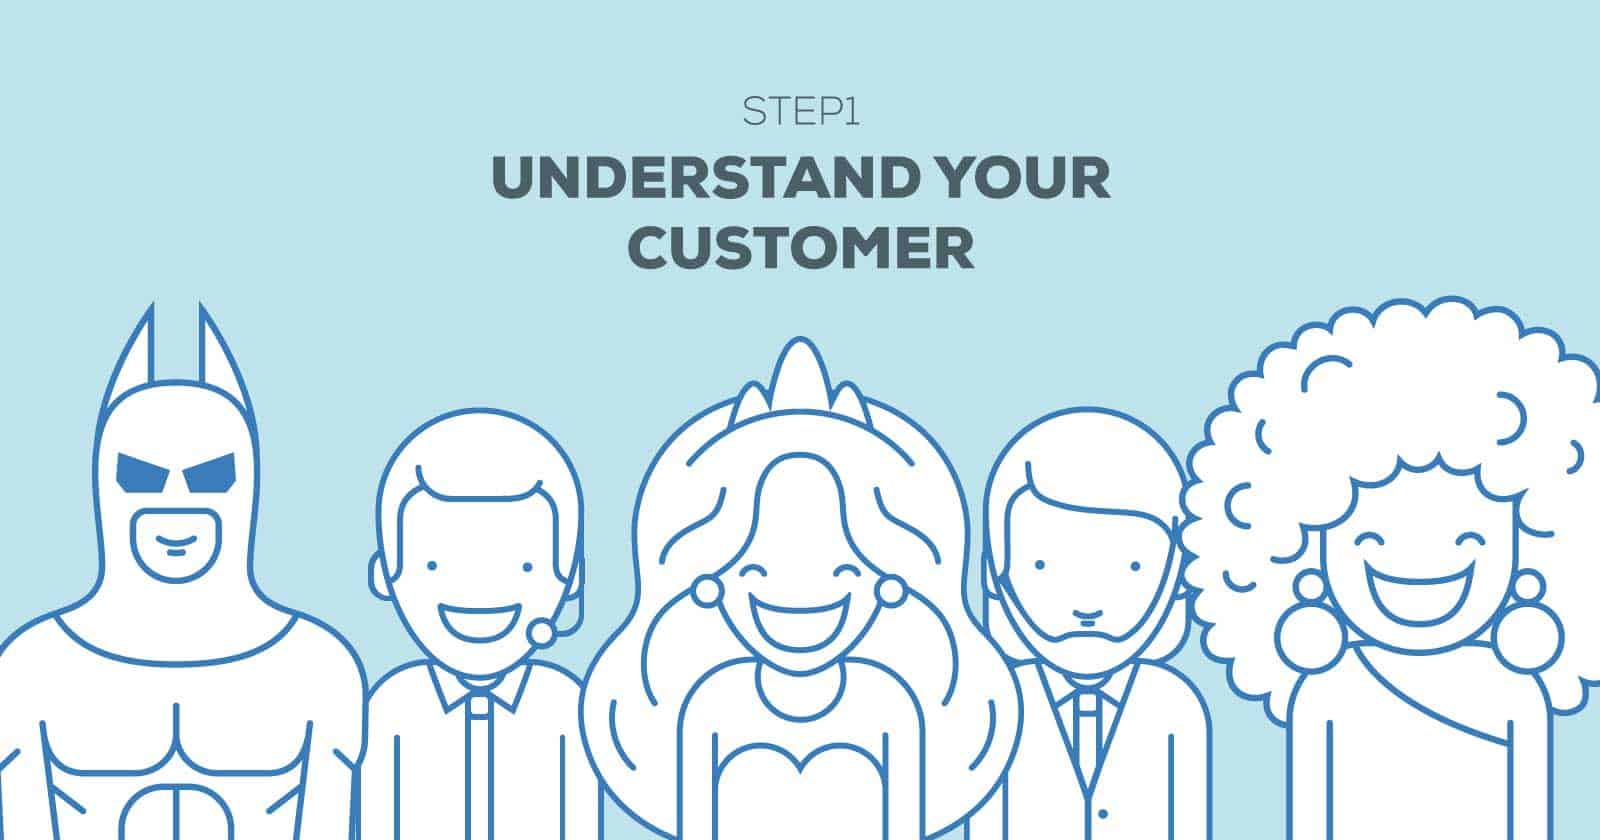 3 - Are You Doing More To Understand Your Customers? Try Focusing On These 3 Key Areas